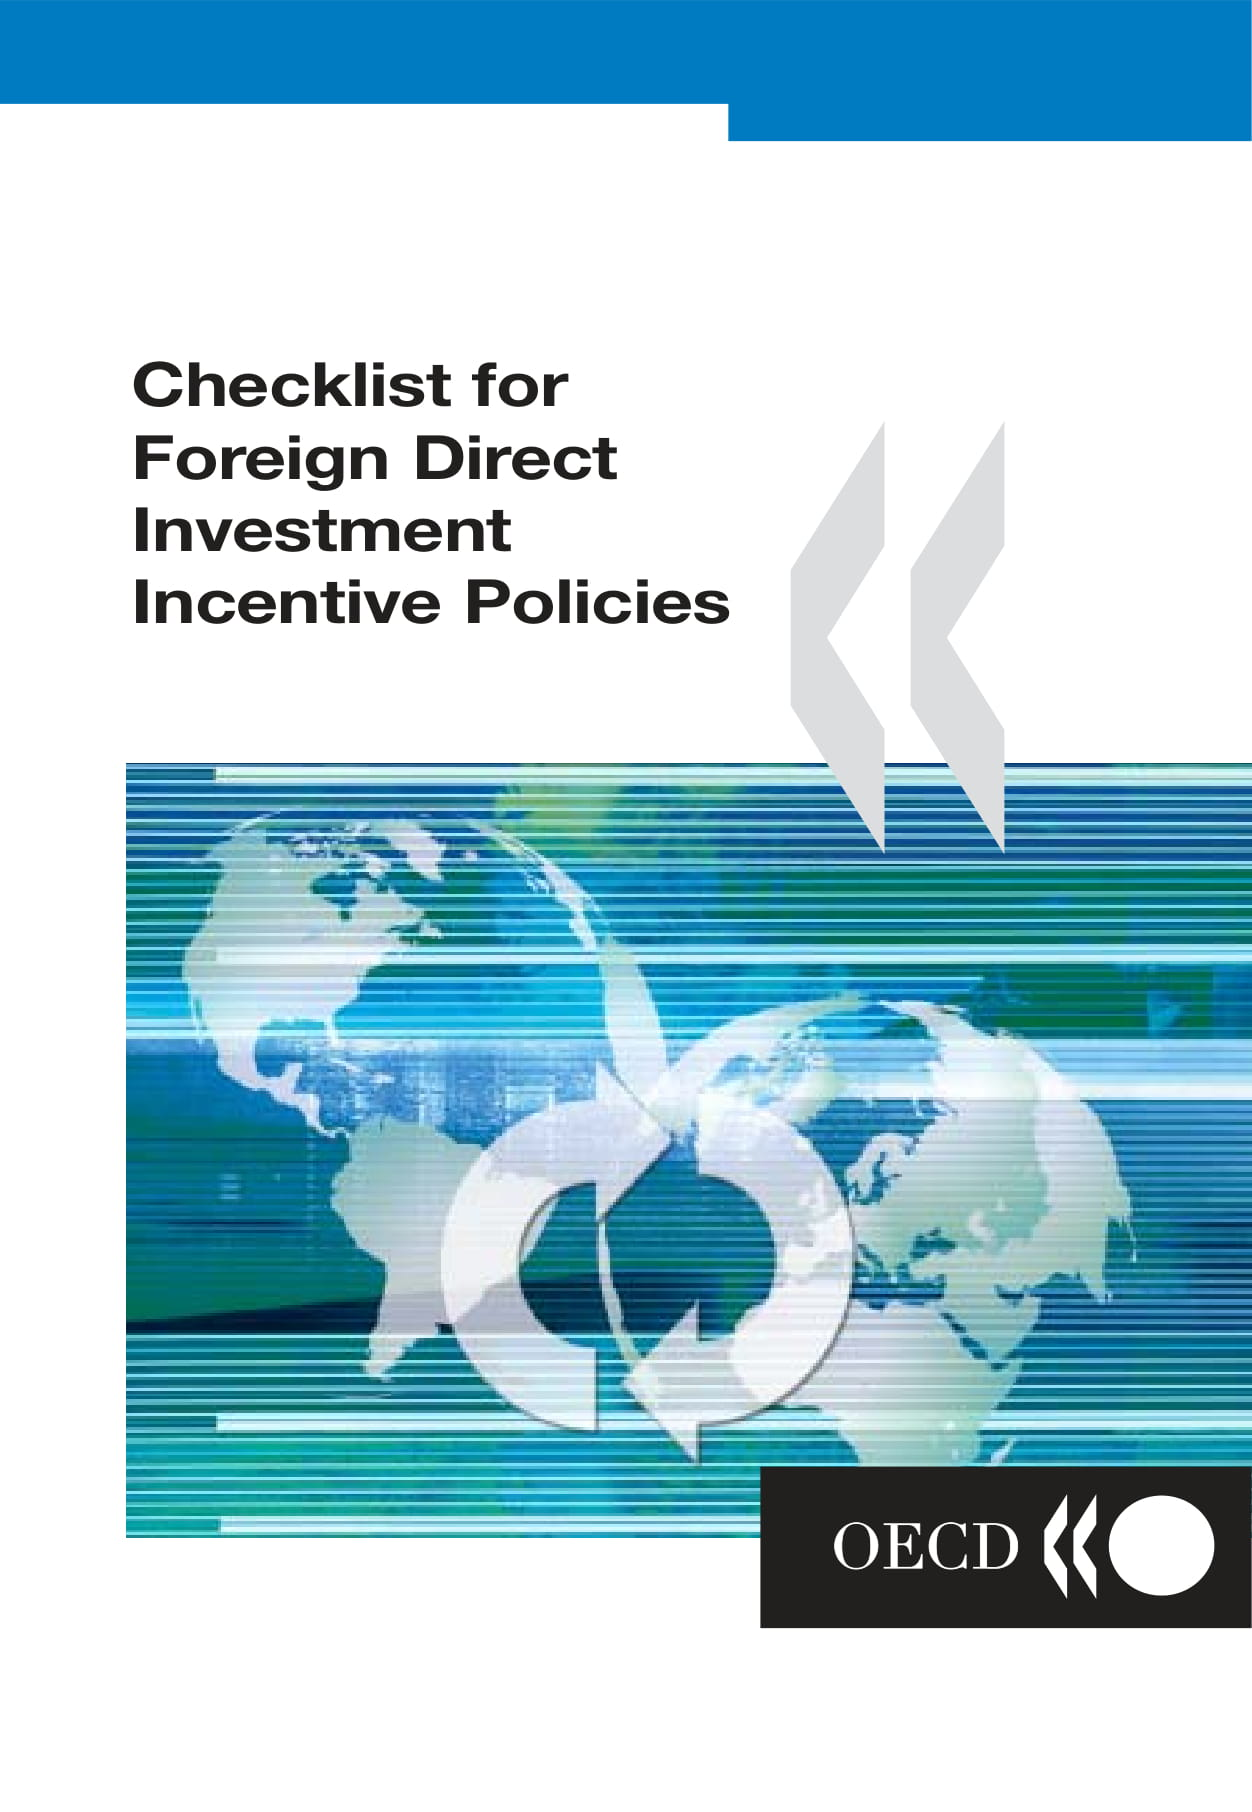 checklist for foreign direct investment incentive policies